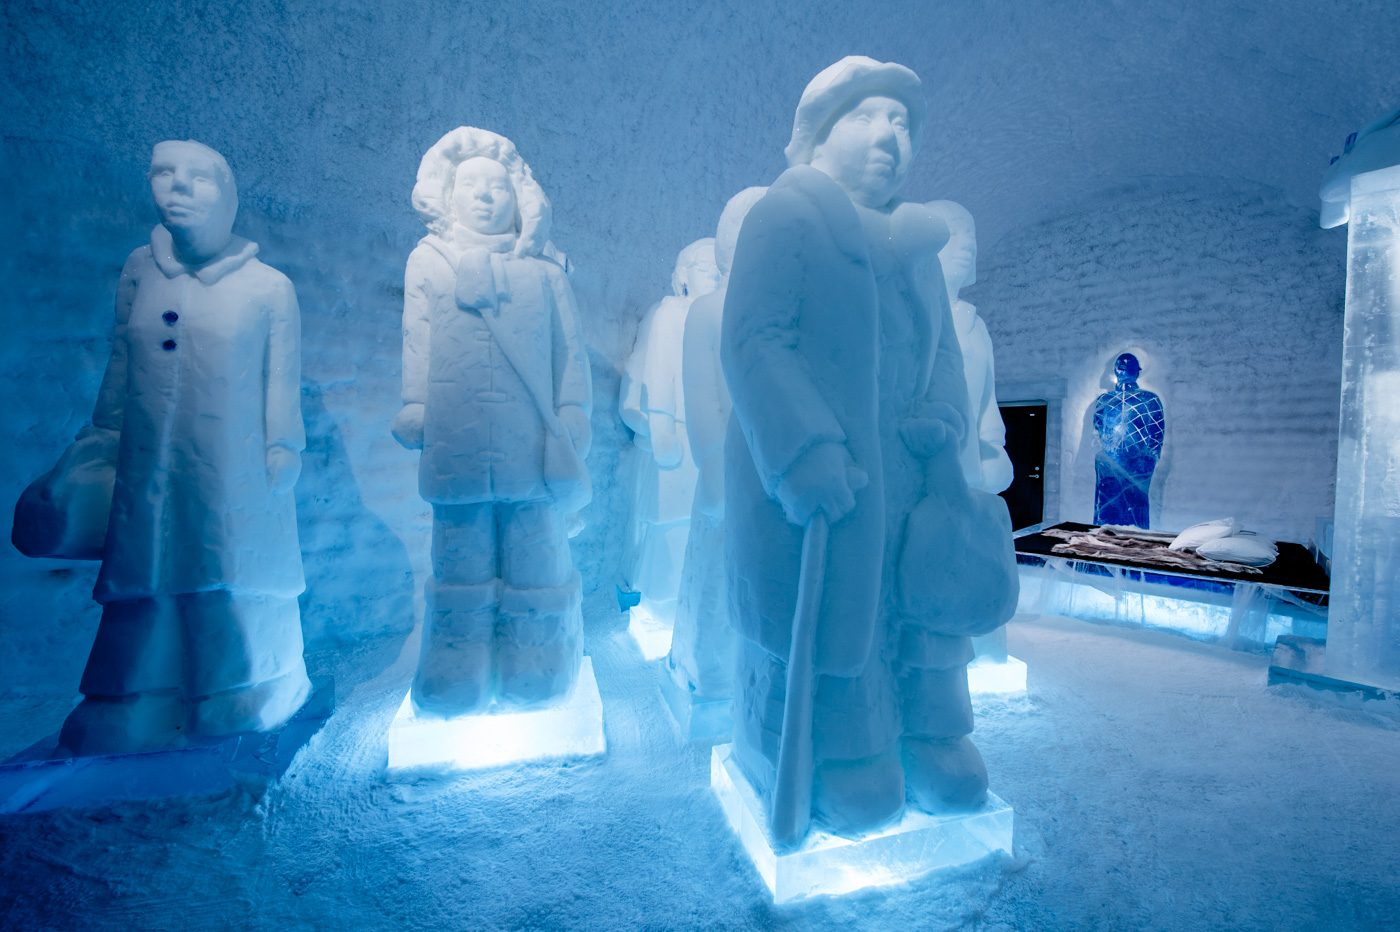 deluxe-suite-the-invisible-invincible-army-icehotel-365-1400x932.jpg